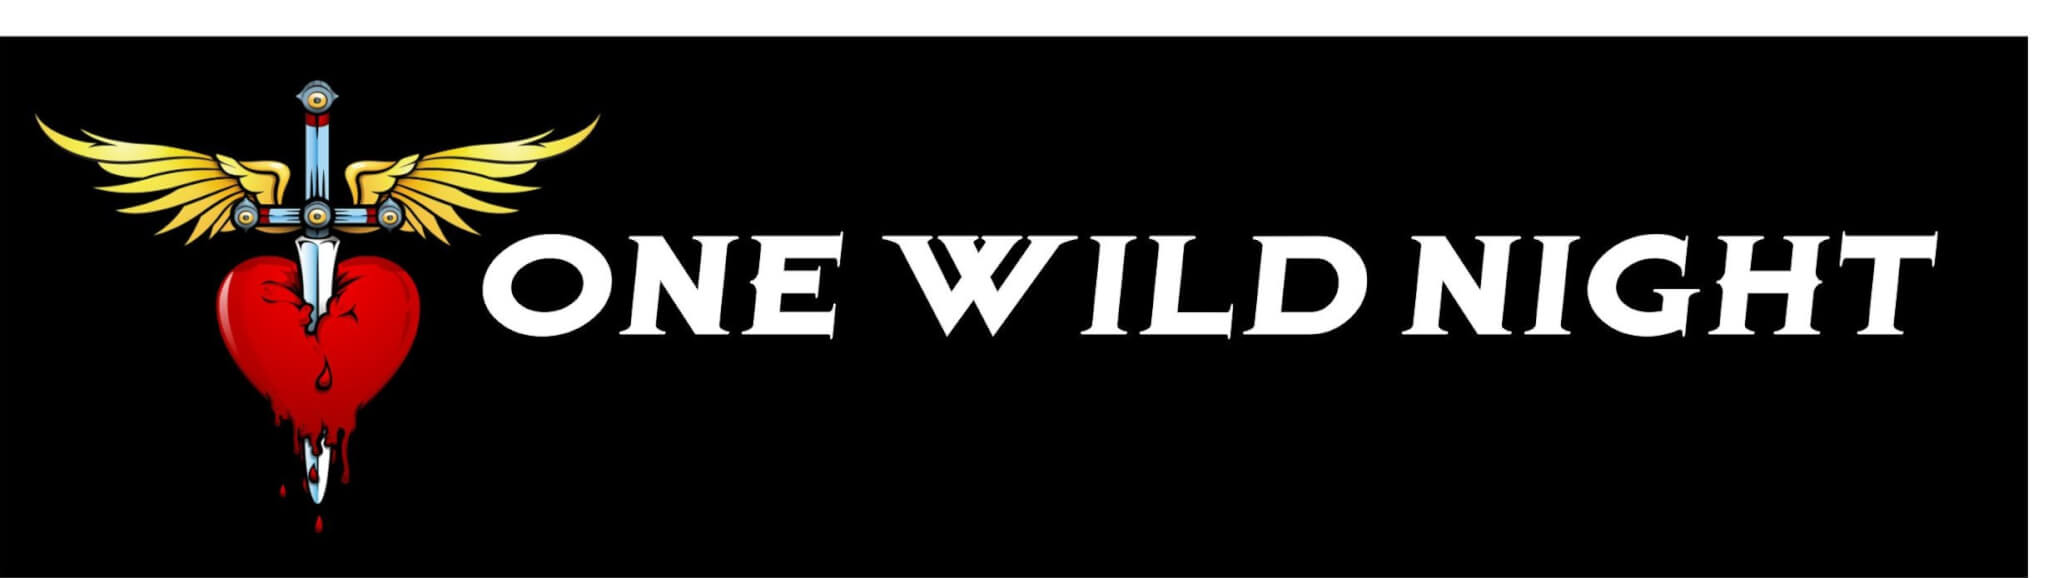 One Wild Night Logo